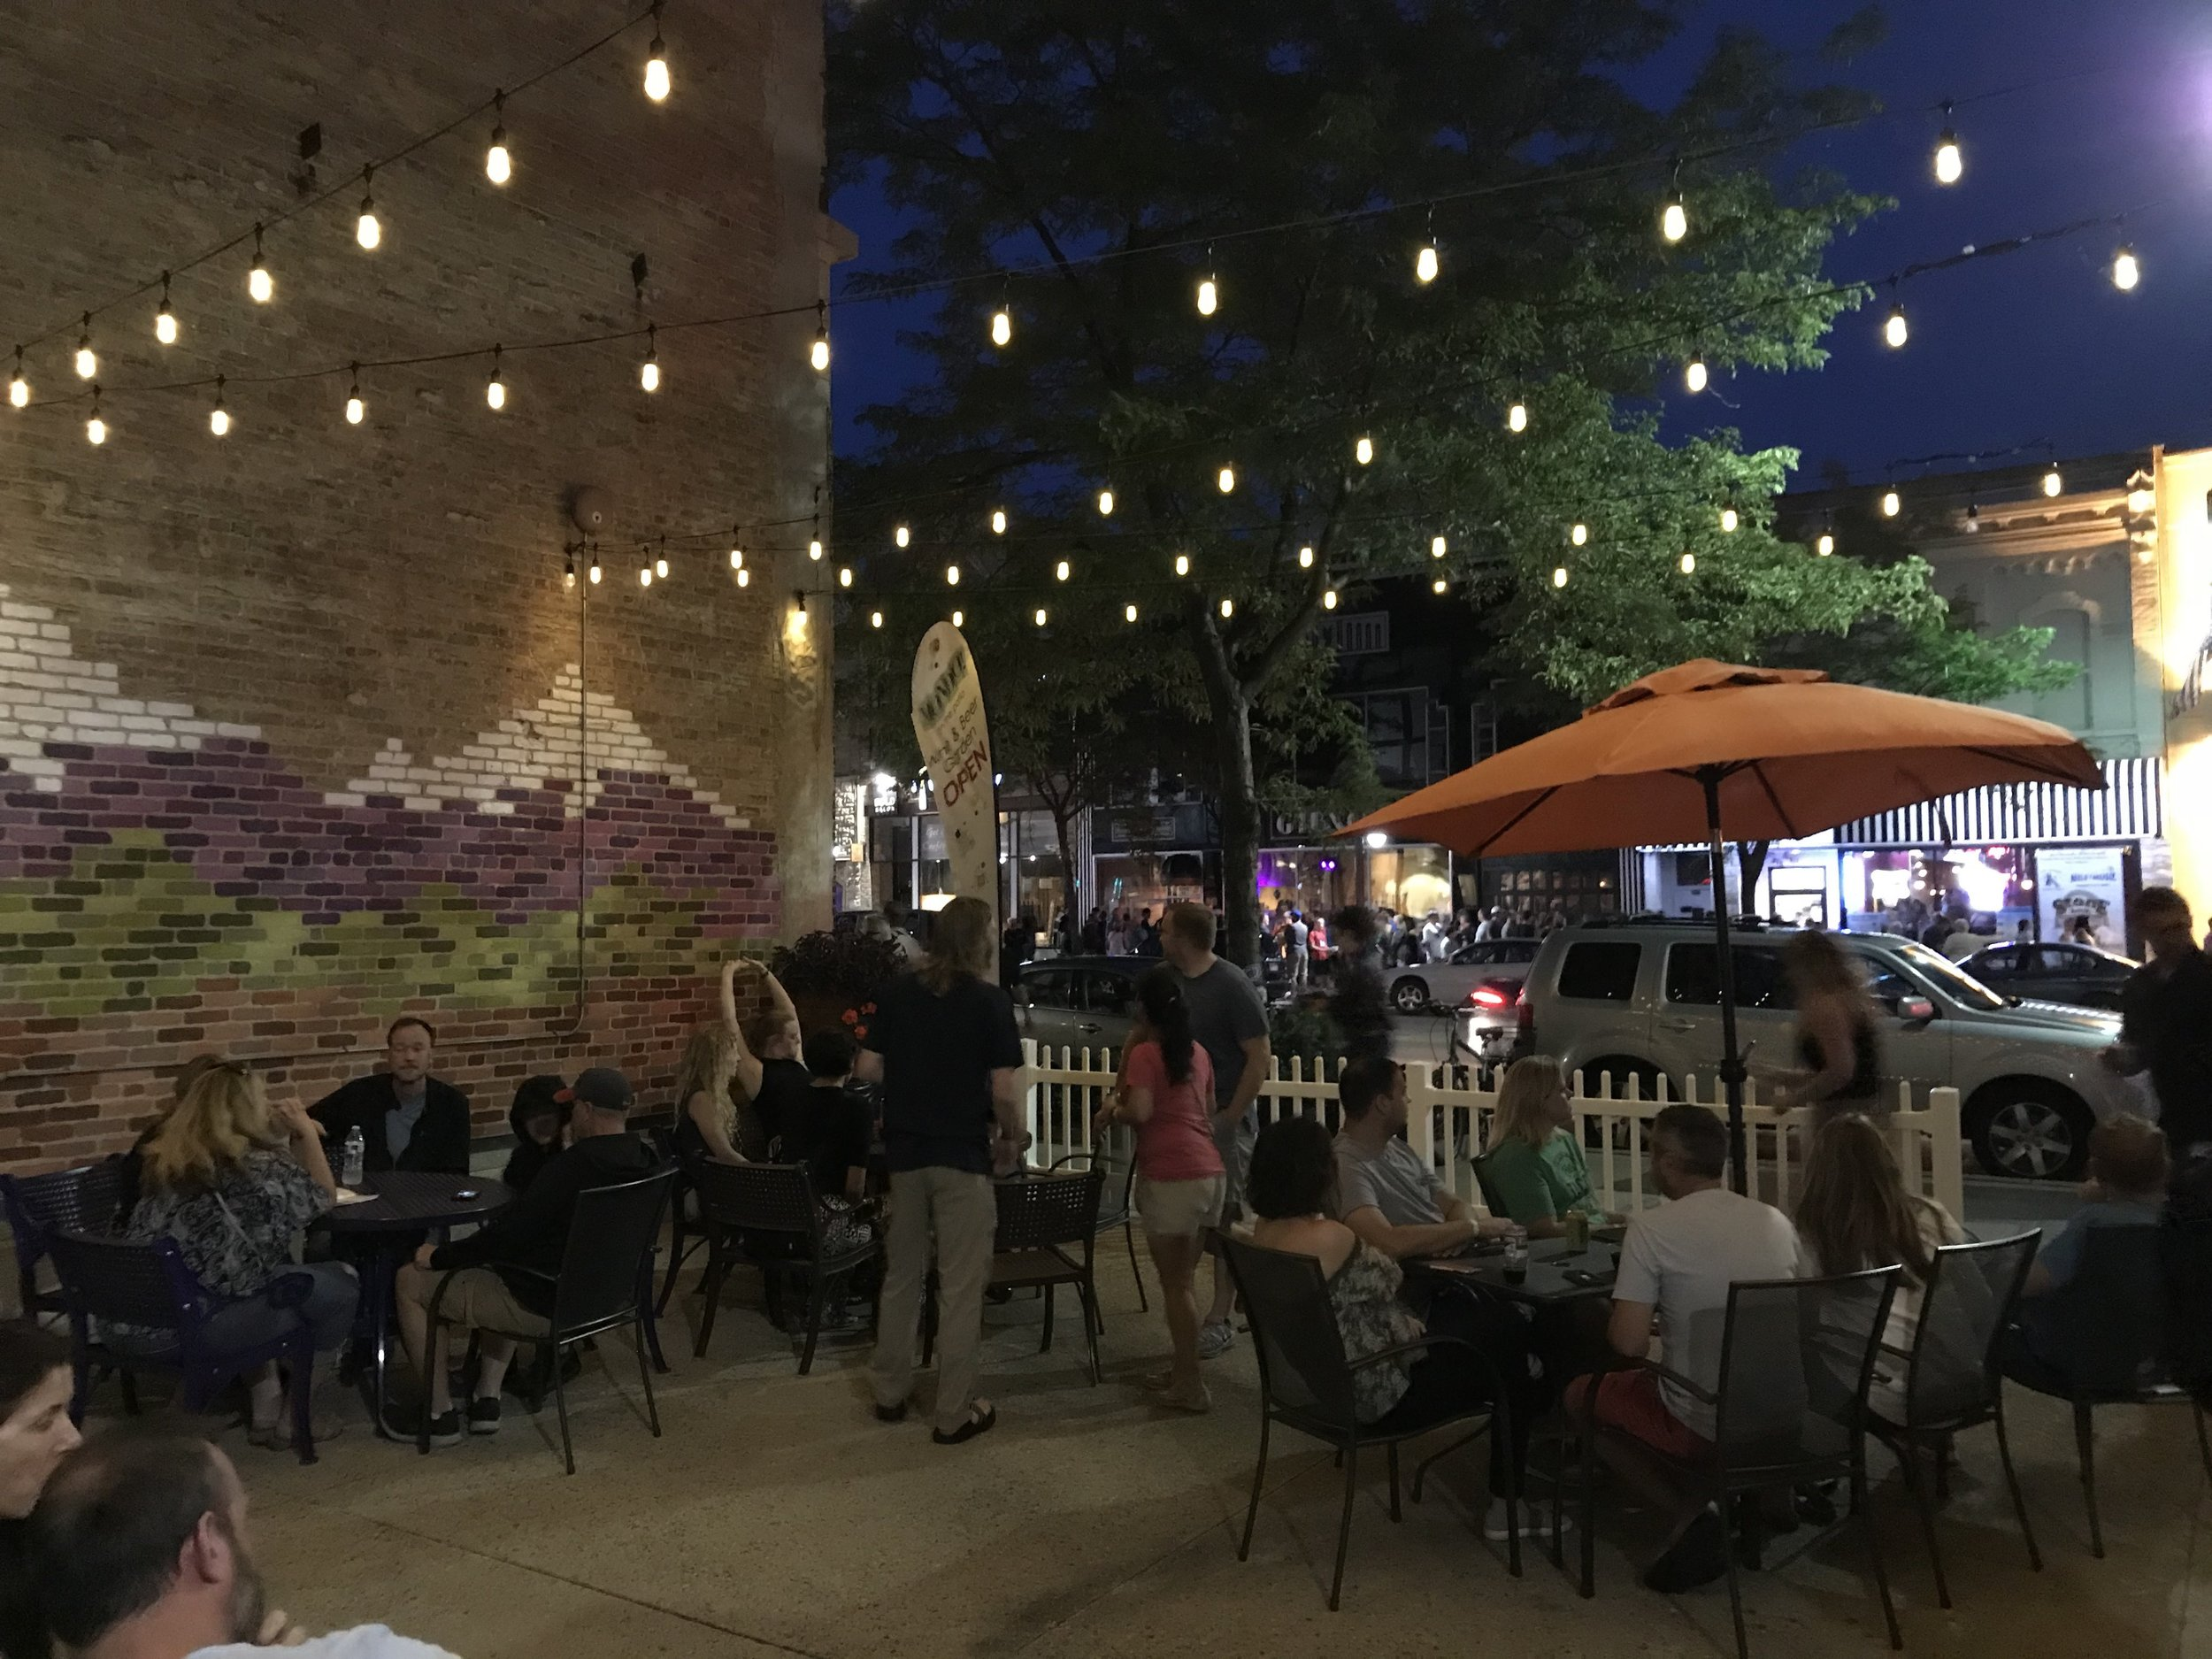 Come enjoy Mondo! on the Patio! - We now have a beautiful wine and beer garden located just 2 doors down from our Mondo! storefront. This space, currently known as the